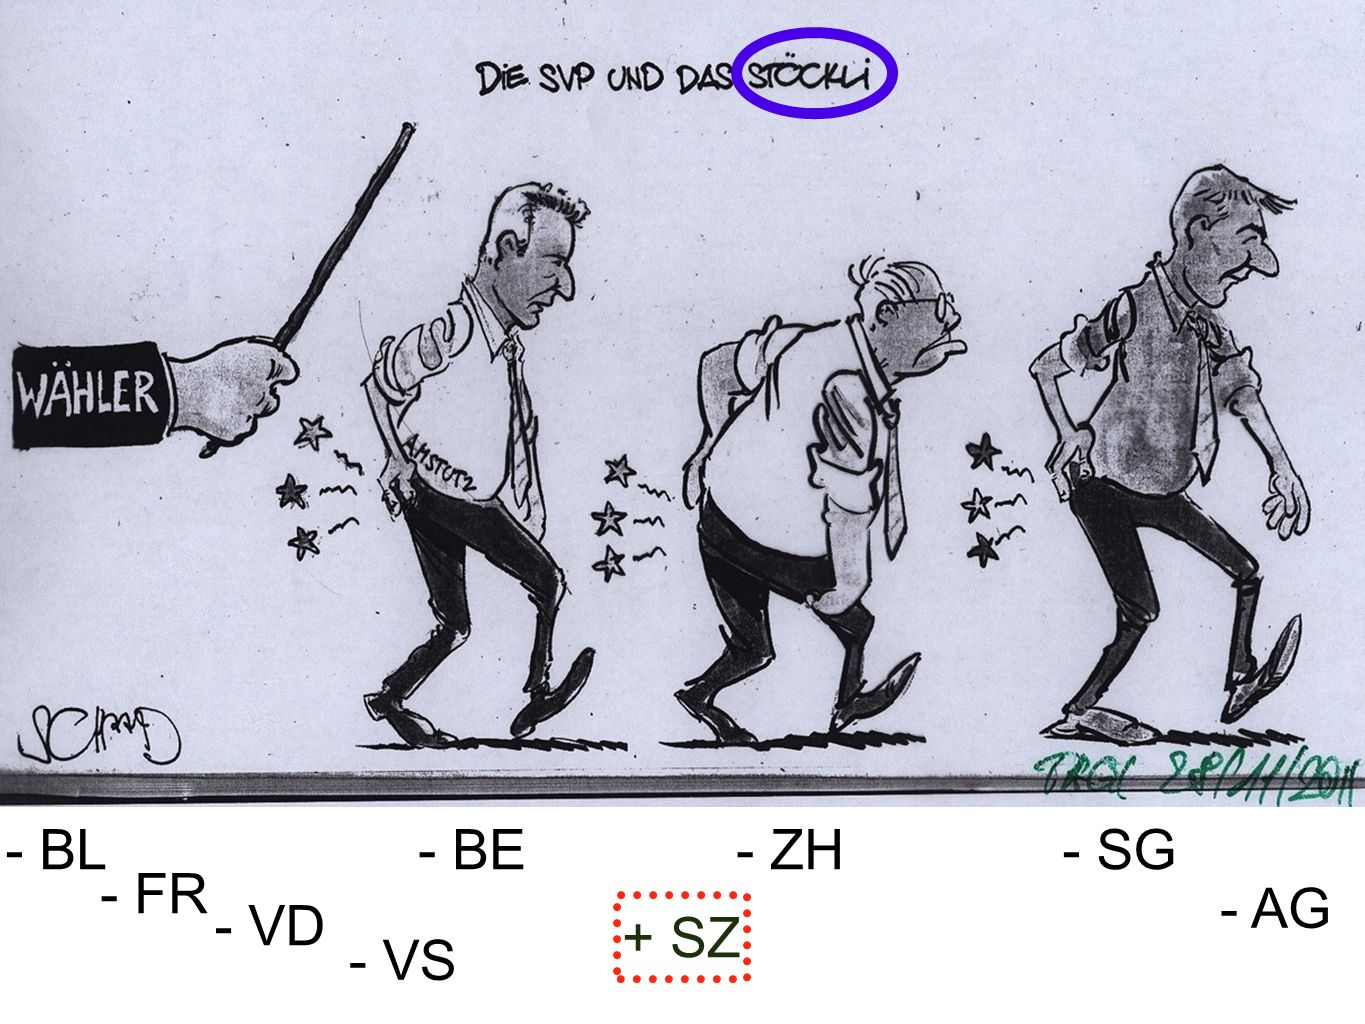 - BE- ZH- SG - AG - BL - FR - VD - VS + SZ